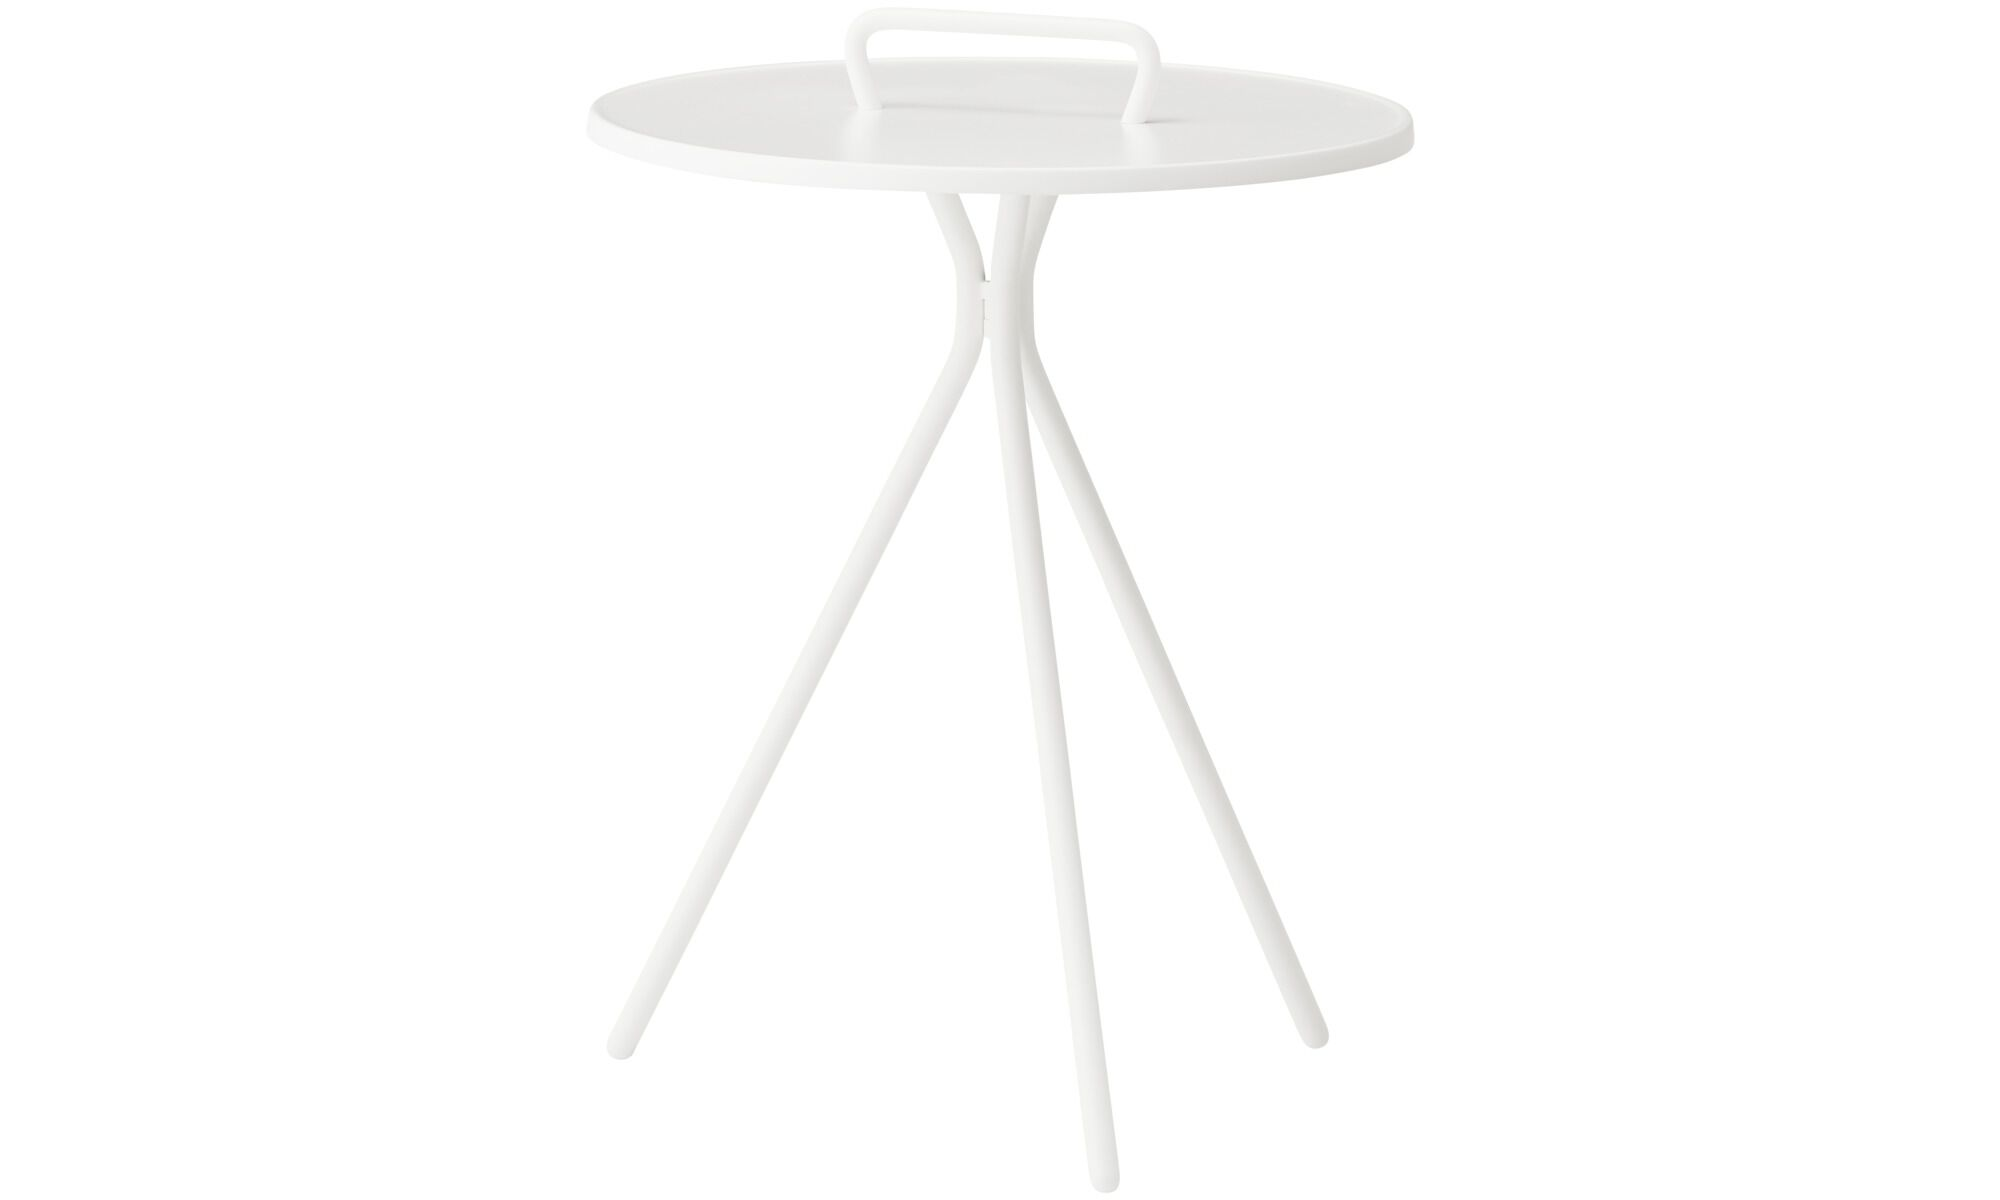 Coffee Tables   Jersey Side Table (for In  And Outdoor Use)   Round